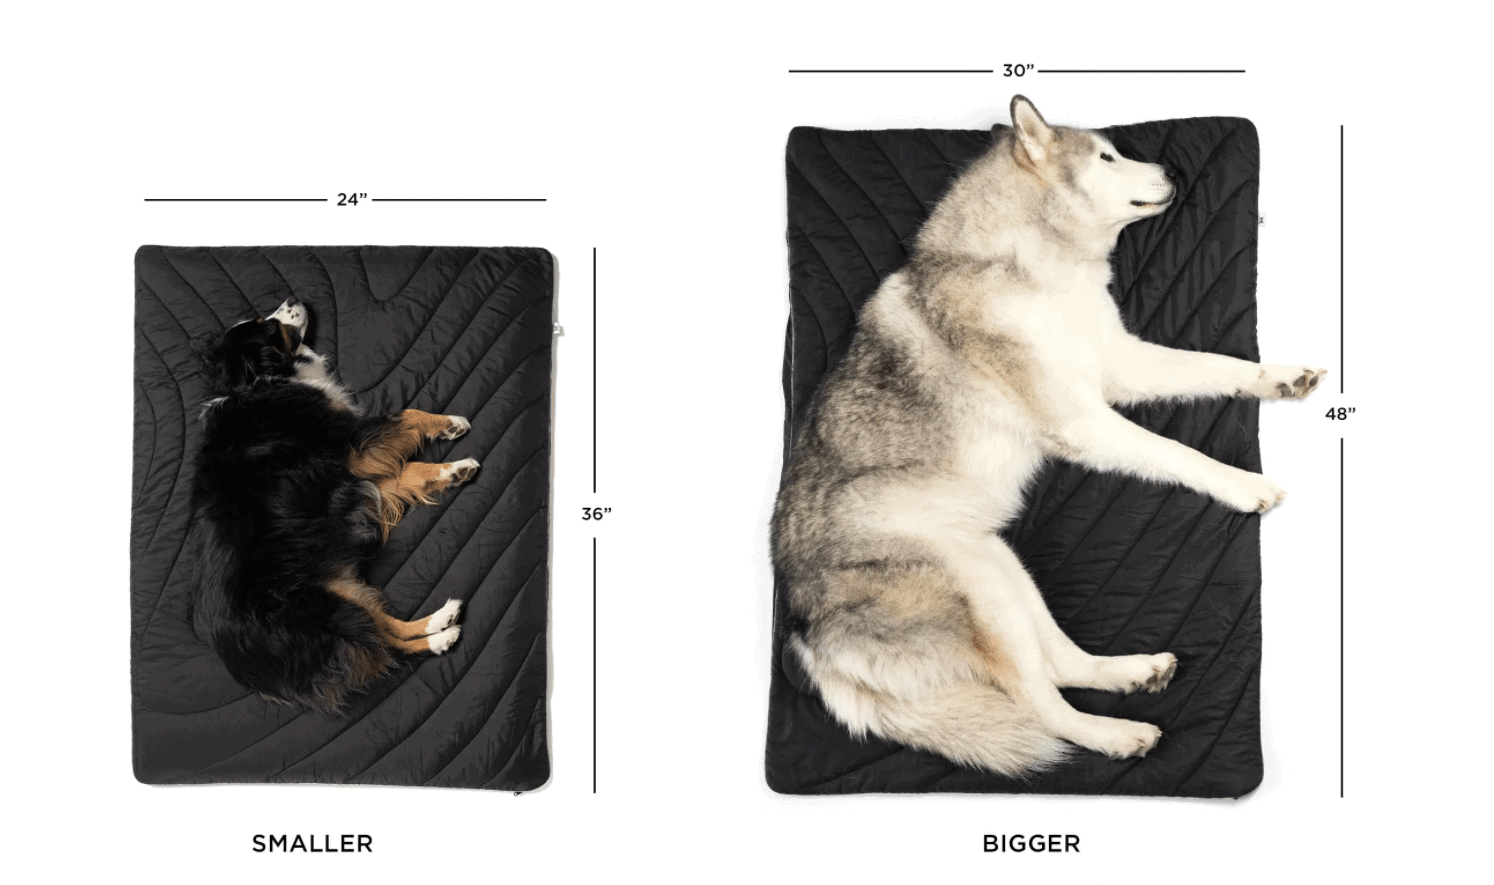 Rumpl Dog Travel Bed comes in 2 sizes